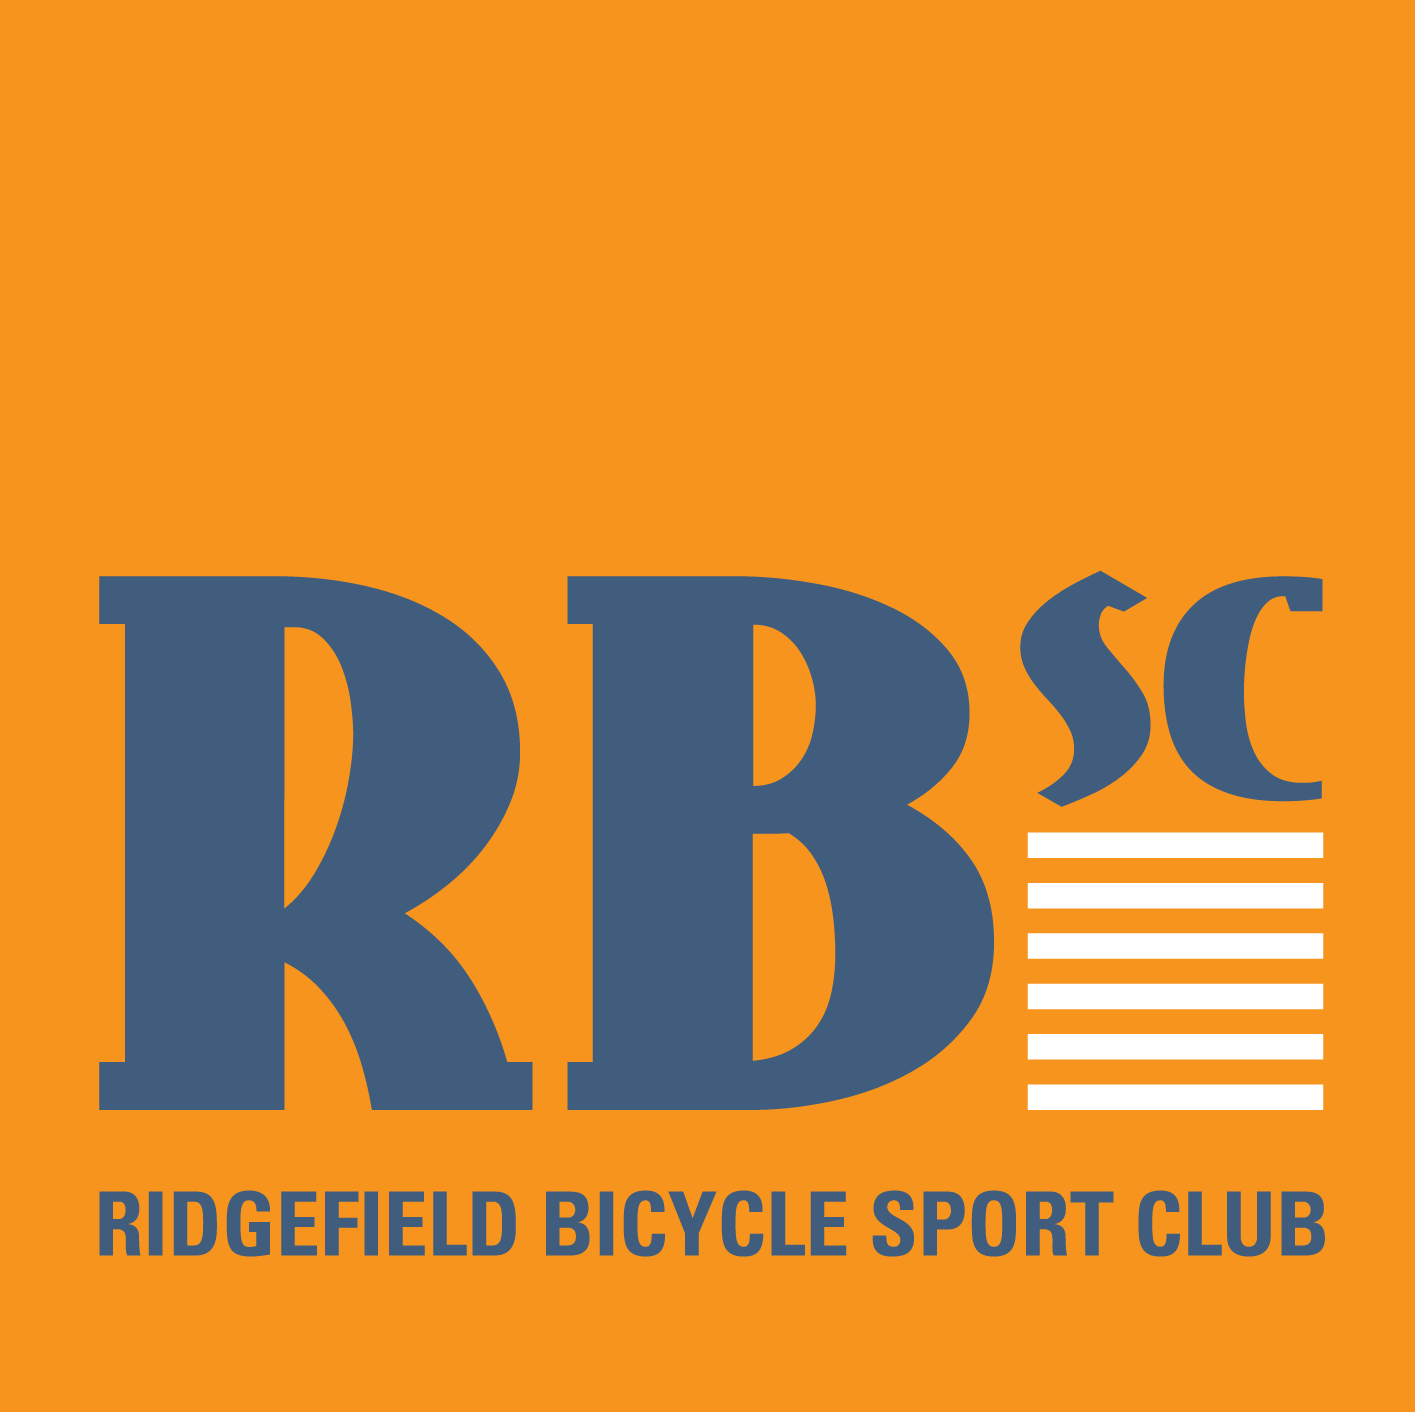 Ridgefield Bicycle Sport Club